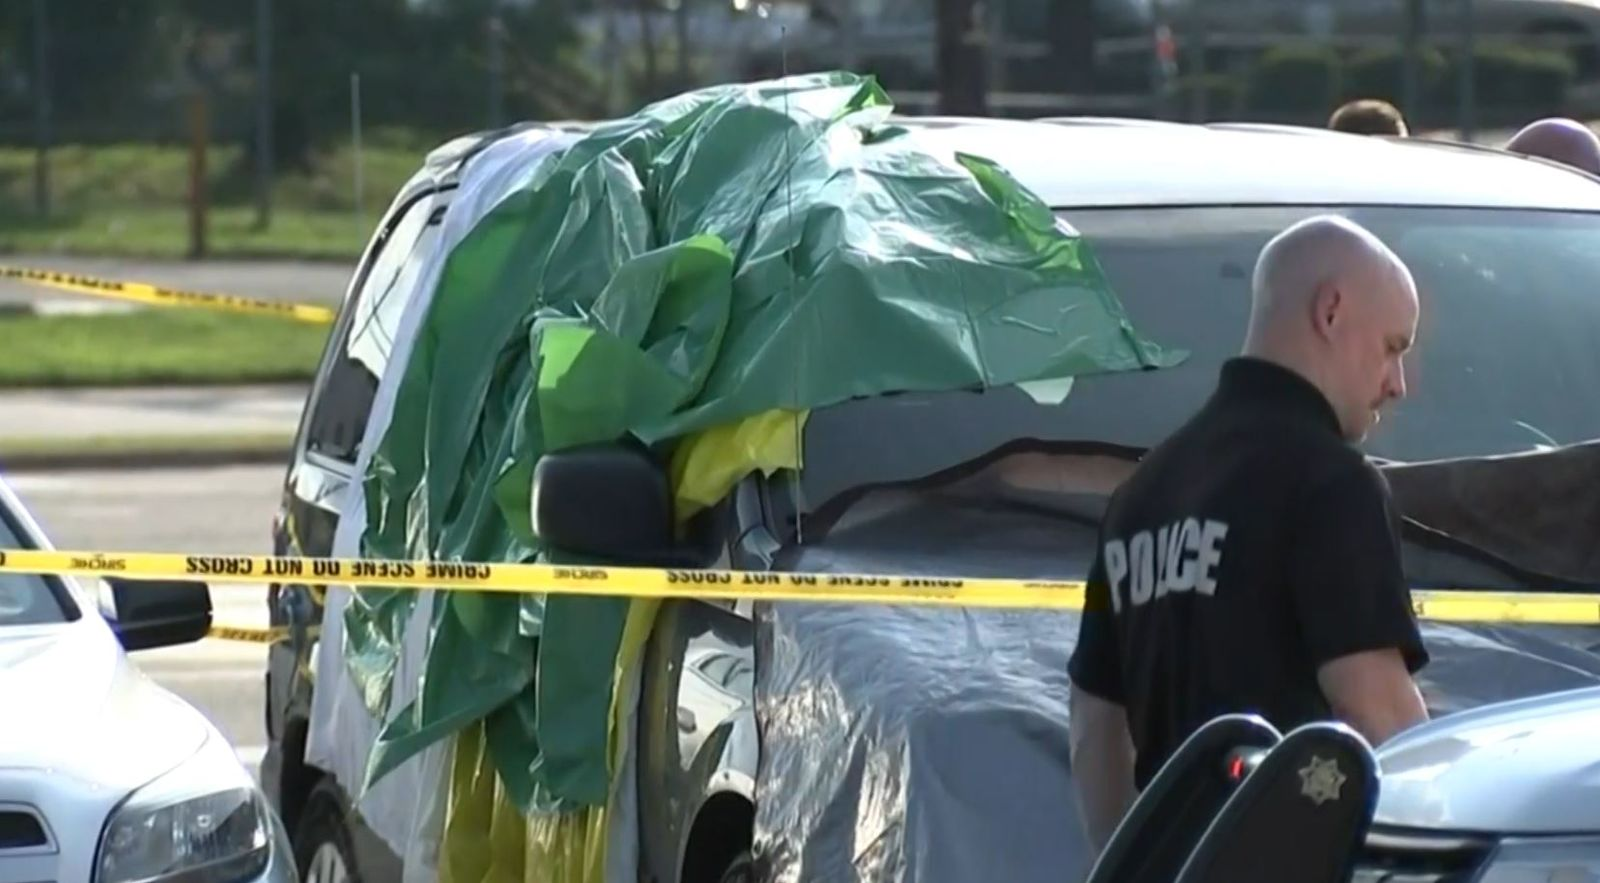 Report: 2-year-old suffocates to death inside hot minivan in New Jersey (KYW/CBS Newspath)